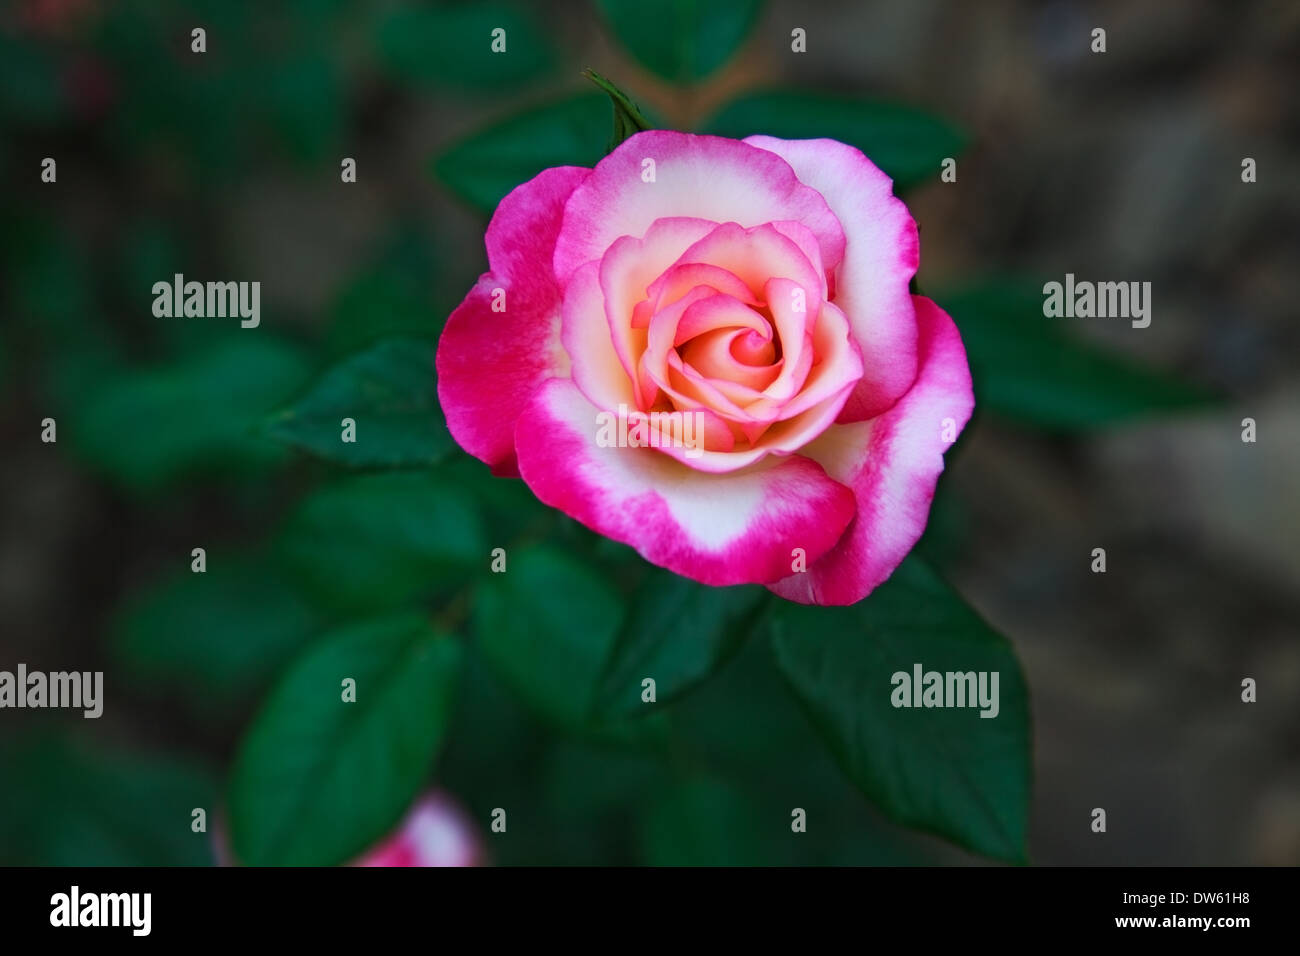 beautiful twocolored flower rose. outdoor shot - Stock Image